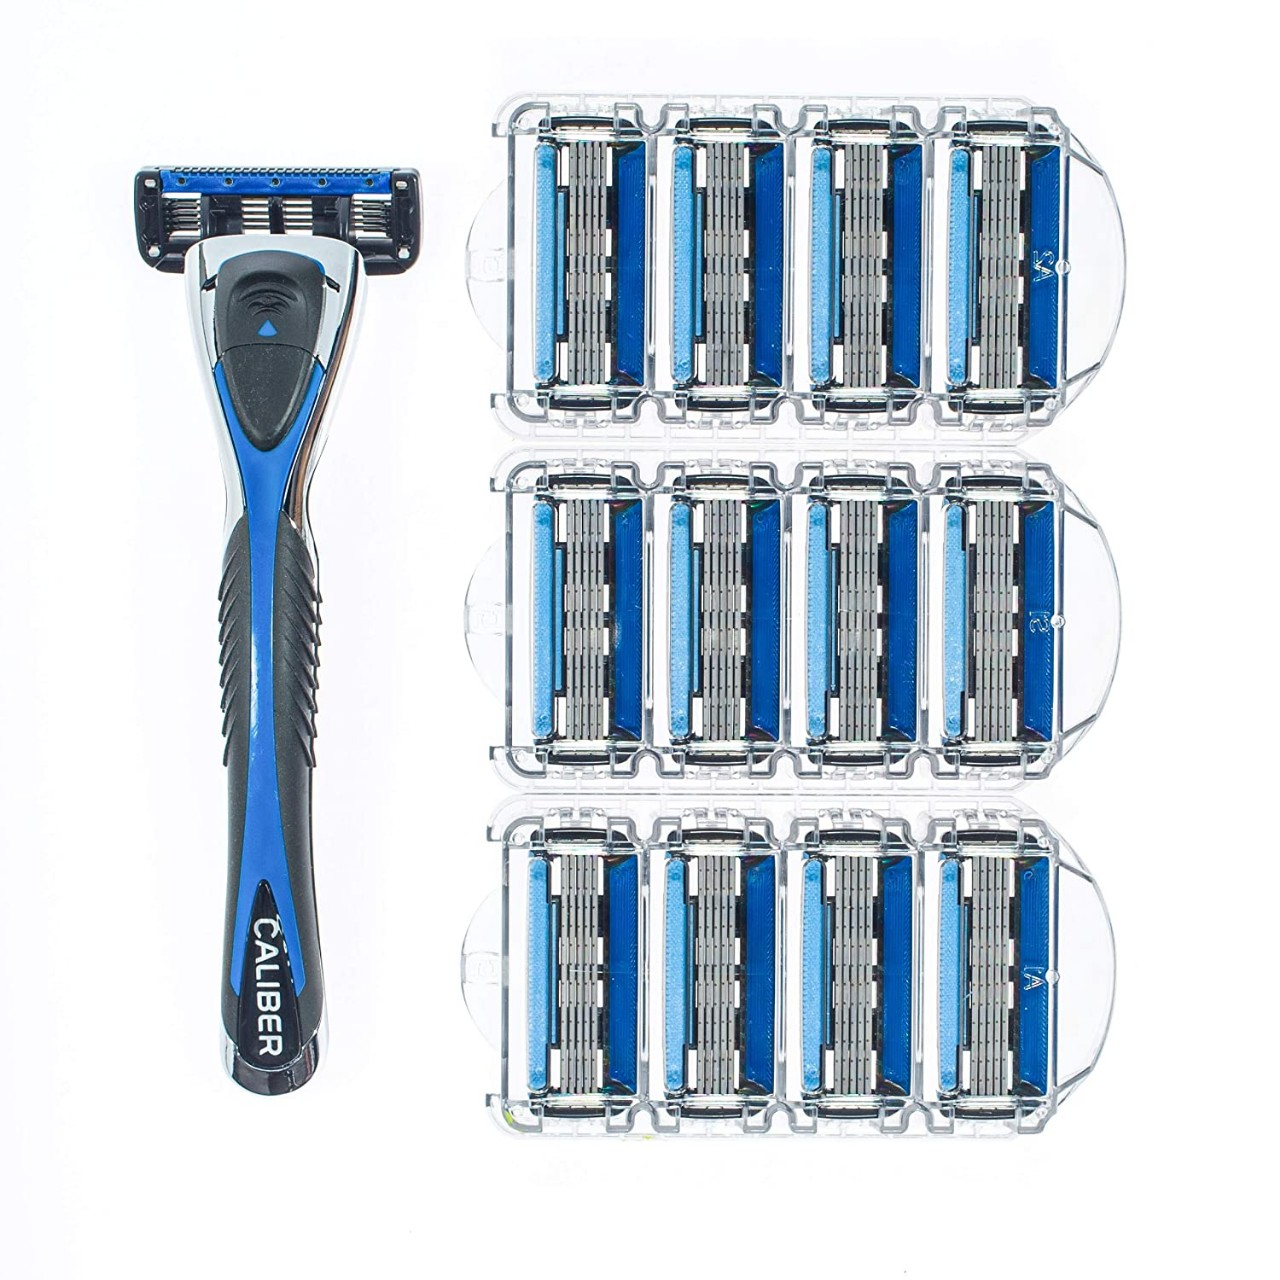 Personna Men's 5 Blade Razor System - Mens Shaving Razors - Razor Handle with 12 Replacement